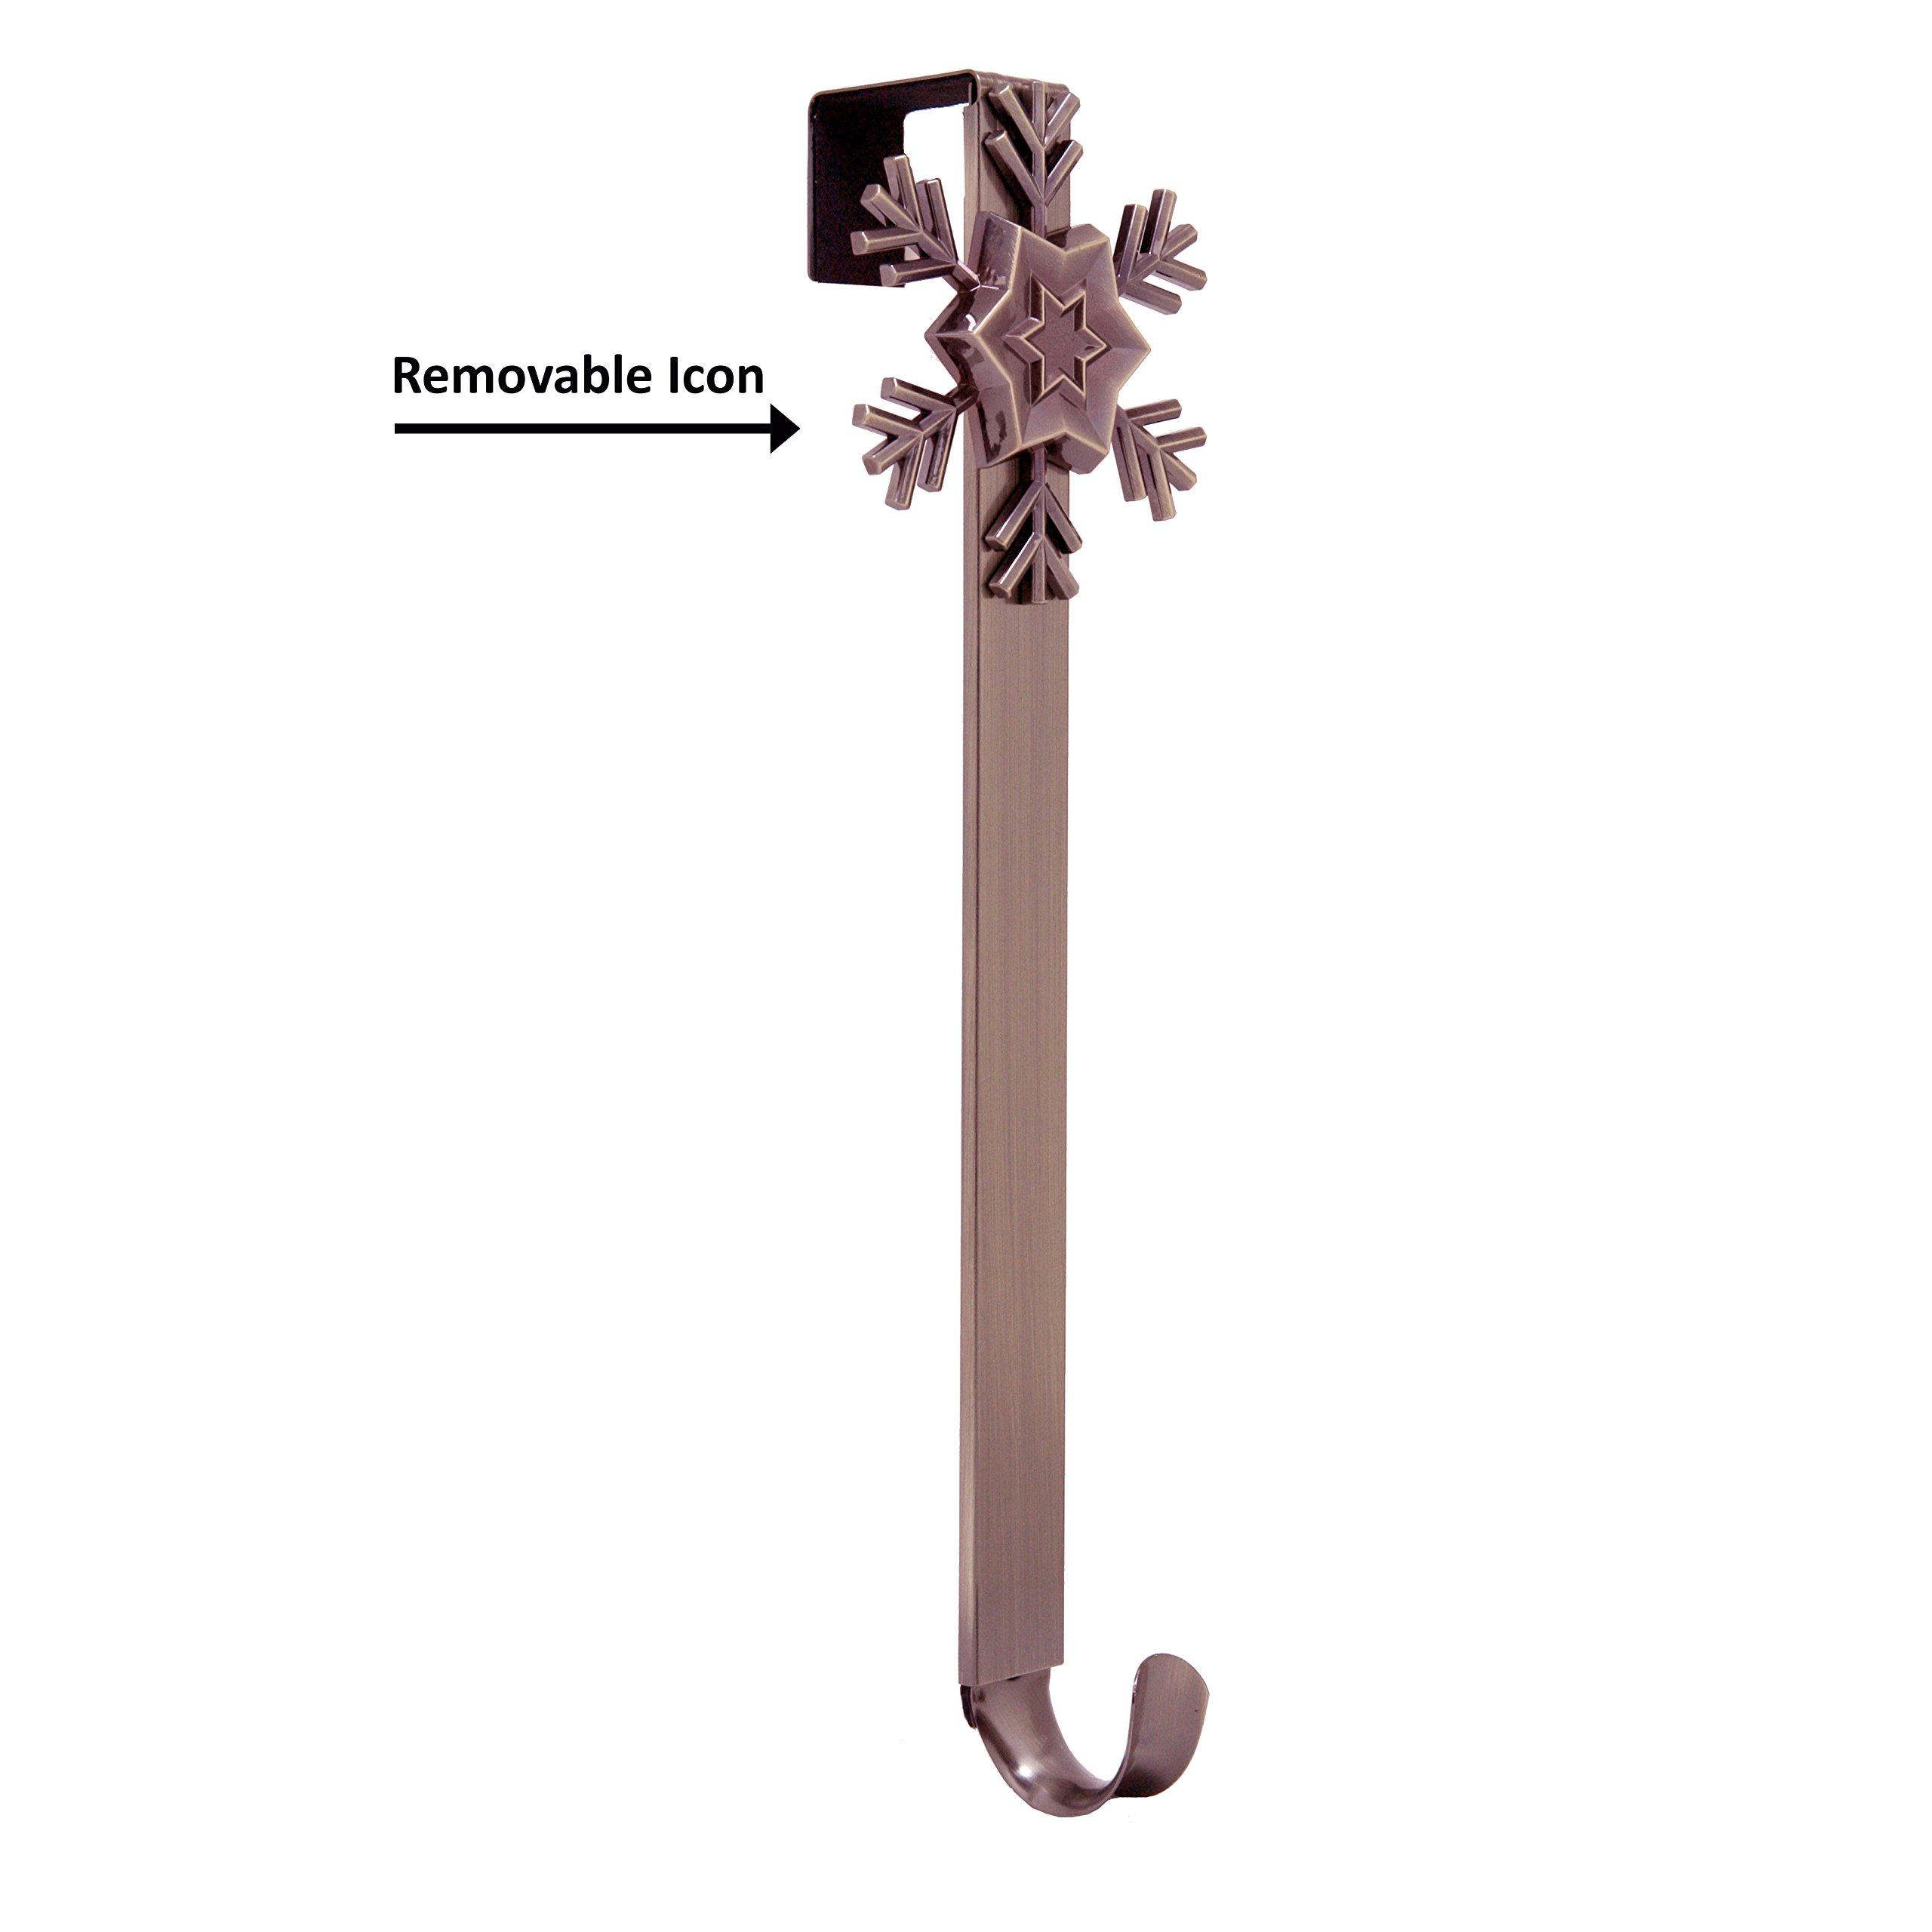 Adjustable Length Wreath Hanger with Removable Icon (Oil-Rubbed Bronze - Snowflake)